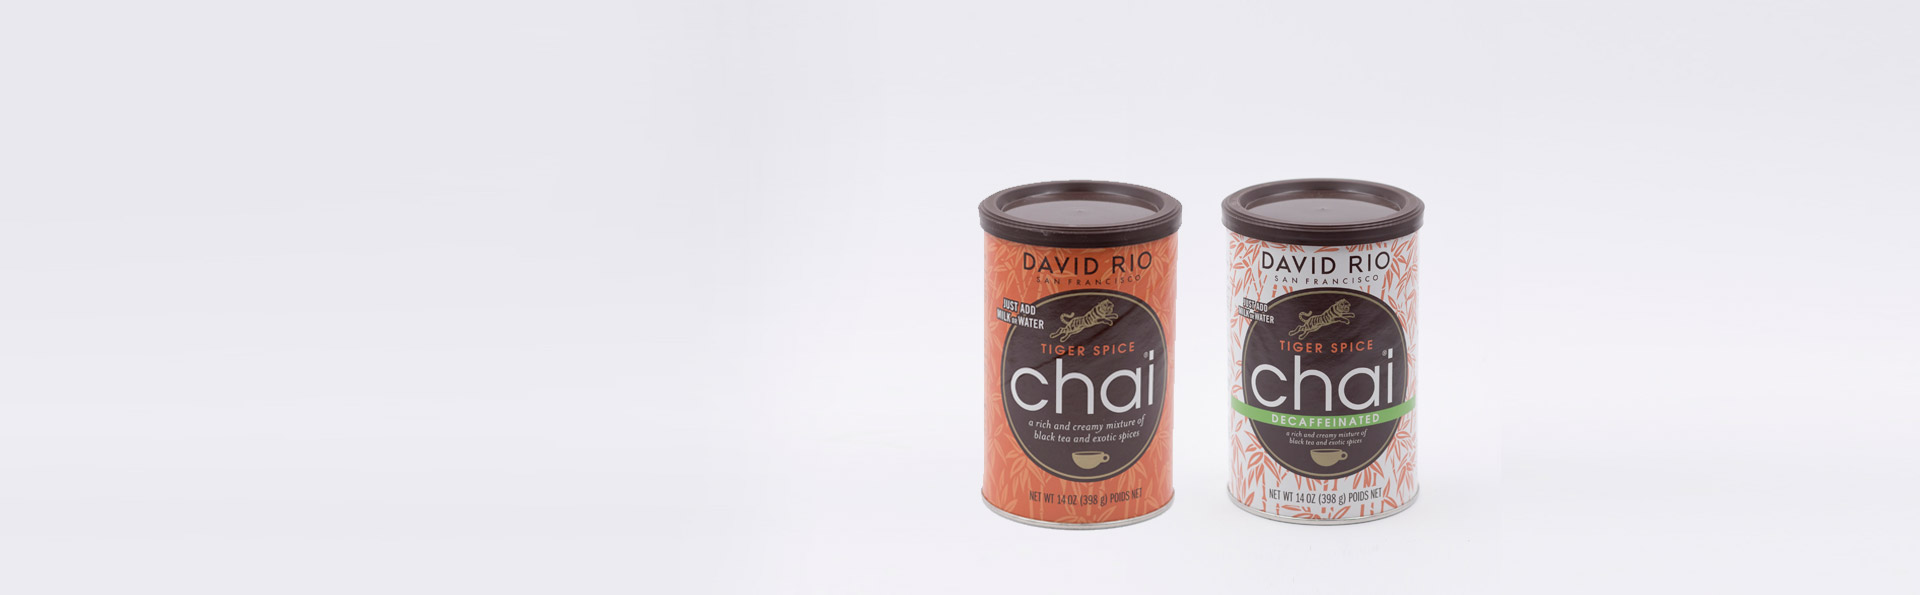 chai-latte-soluble-te-infusion-david-rio-tiger-spice-descafeinado